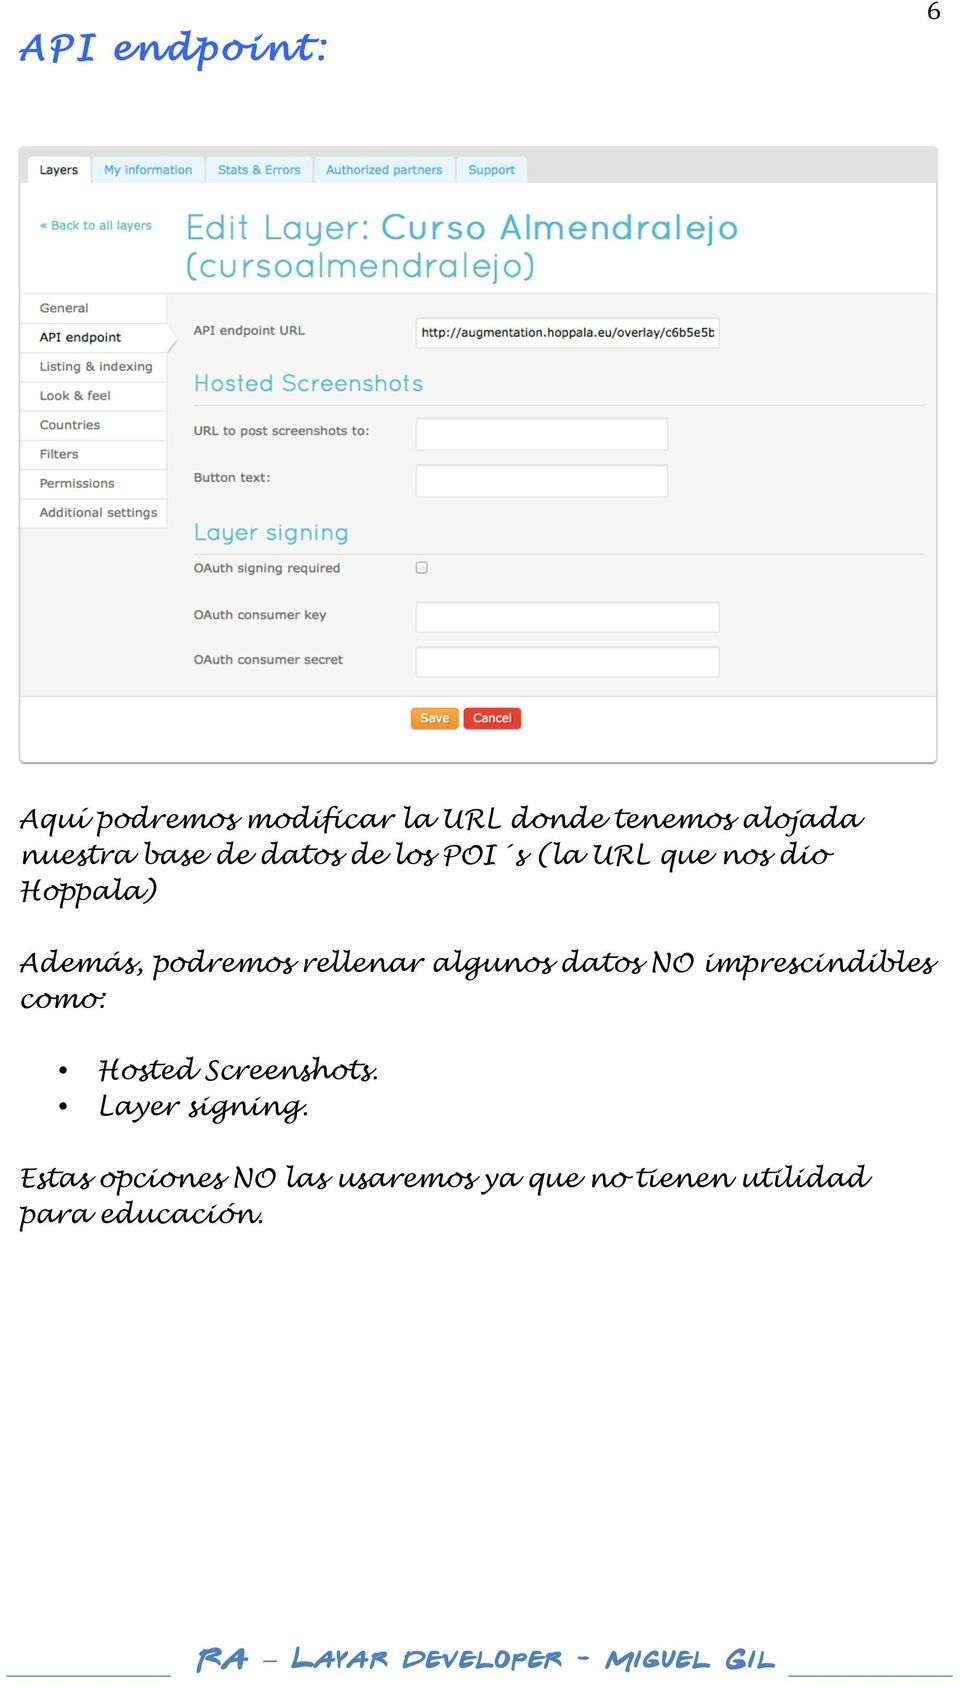 rellenar algunos datos NO imprescindibles como: Hosted Screenshots.